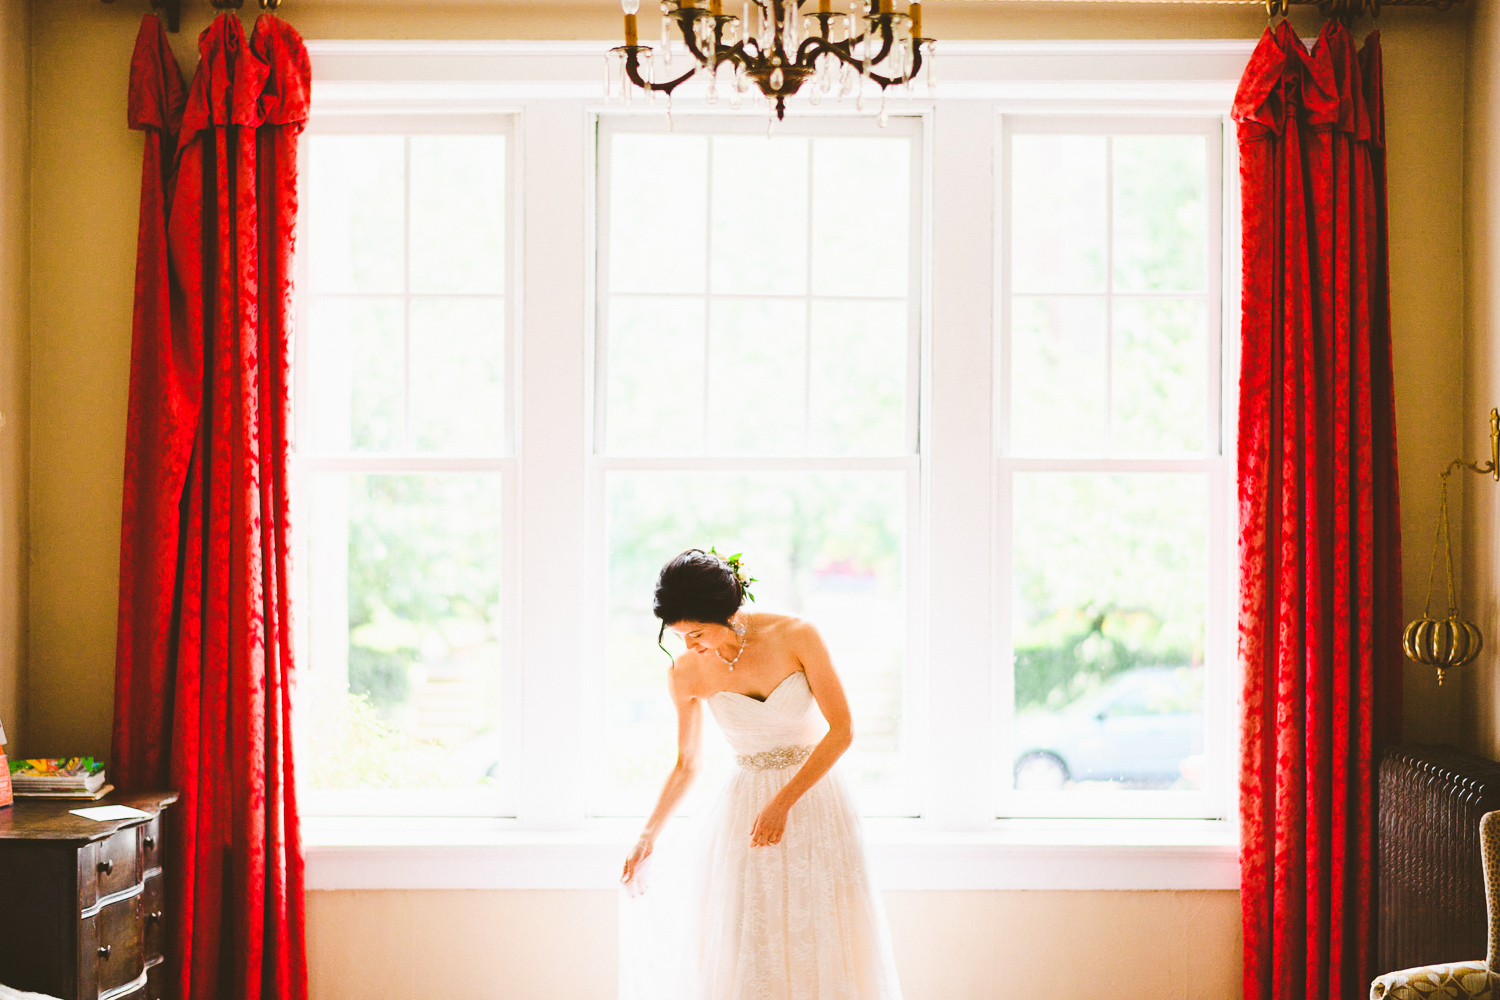 010 - portrait of the bride in front of window with beautiful red curtains.jpg